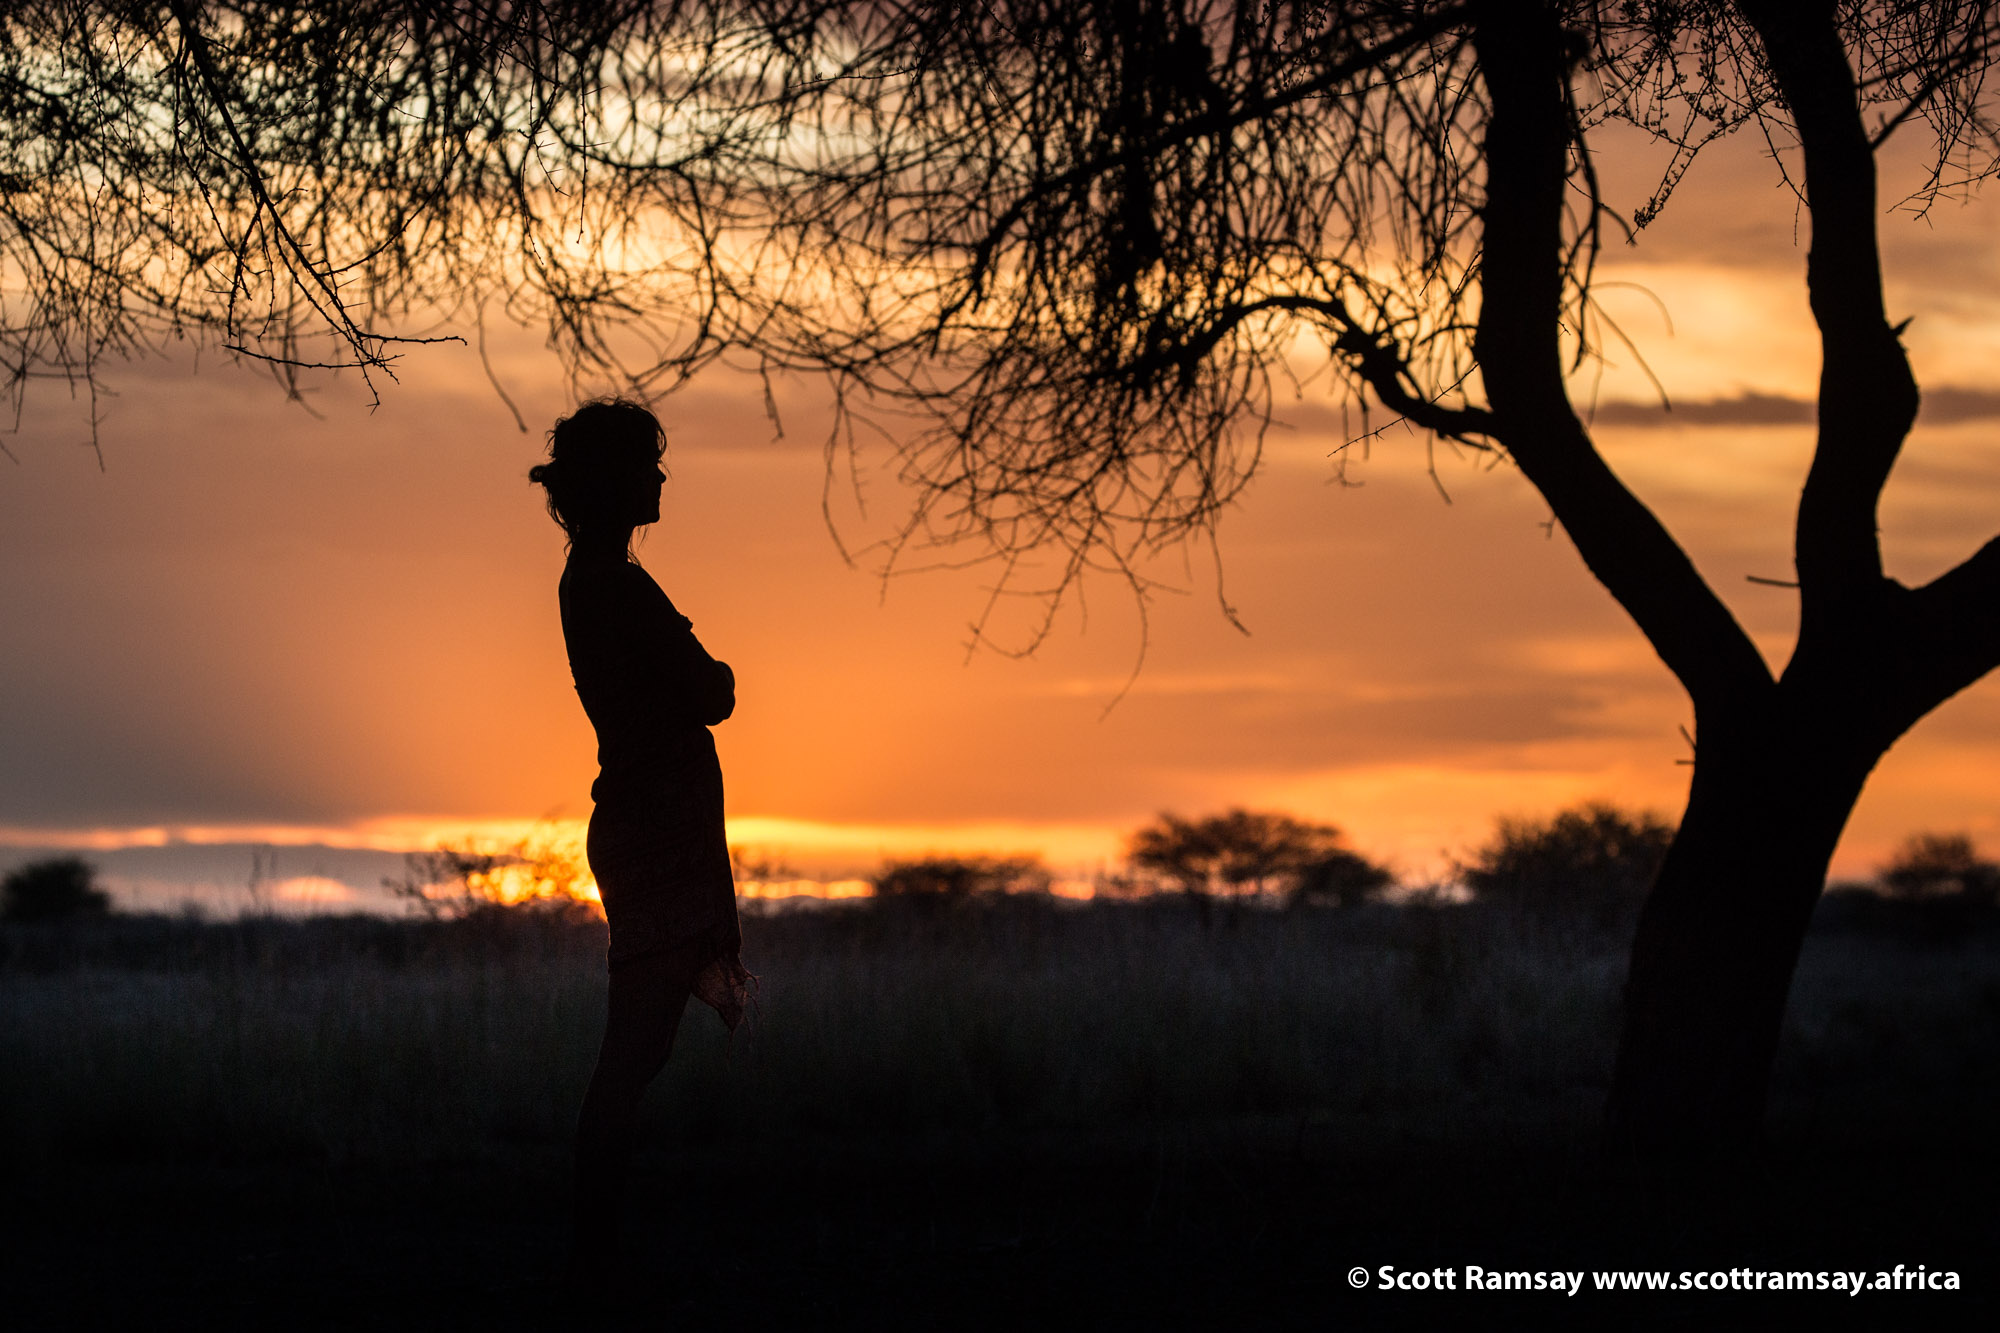 Joni at sunset on our last evening in Central Kalahari, with her friend the camelthorn tree. Near Leopard Pan.